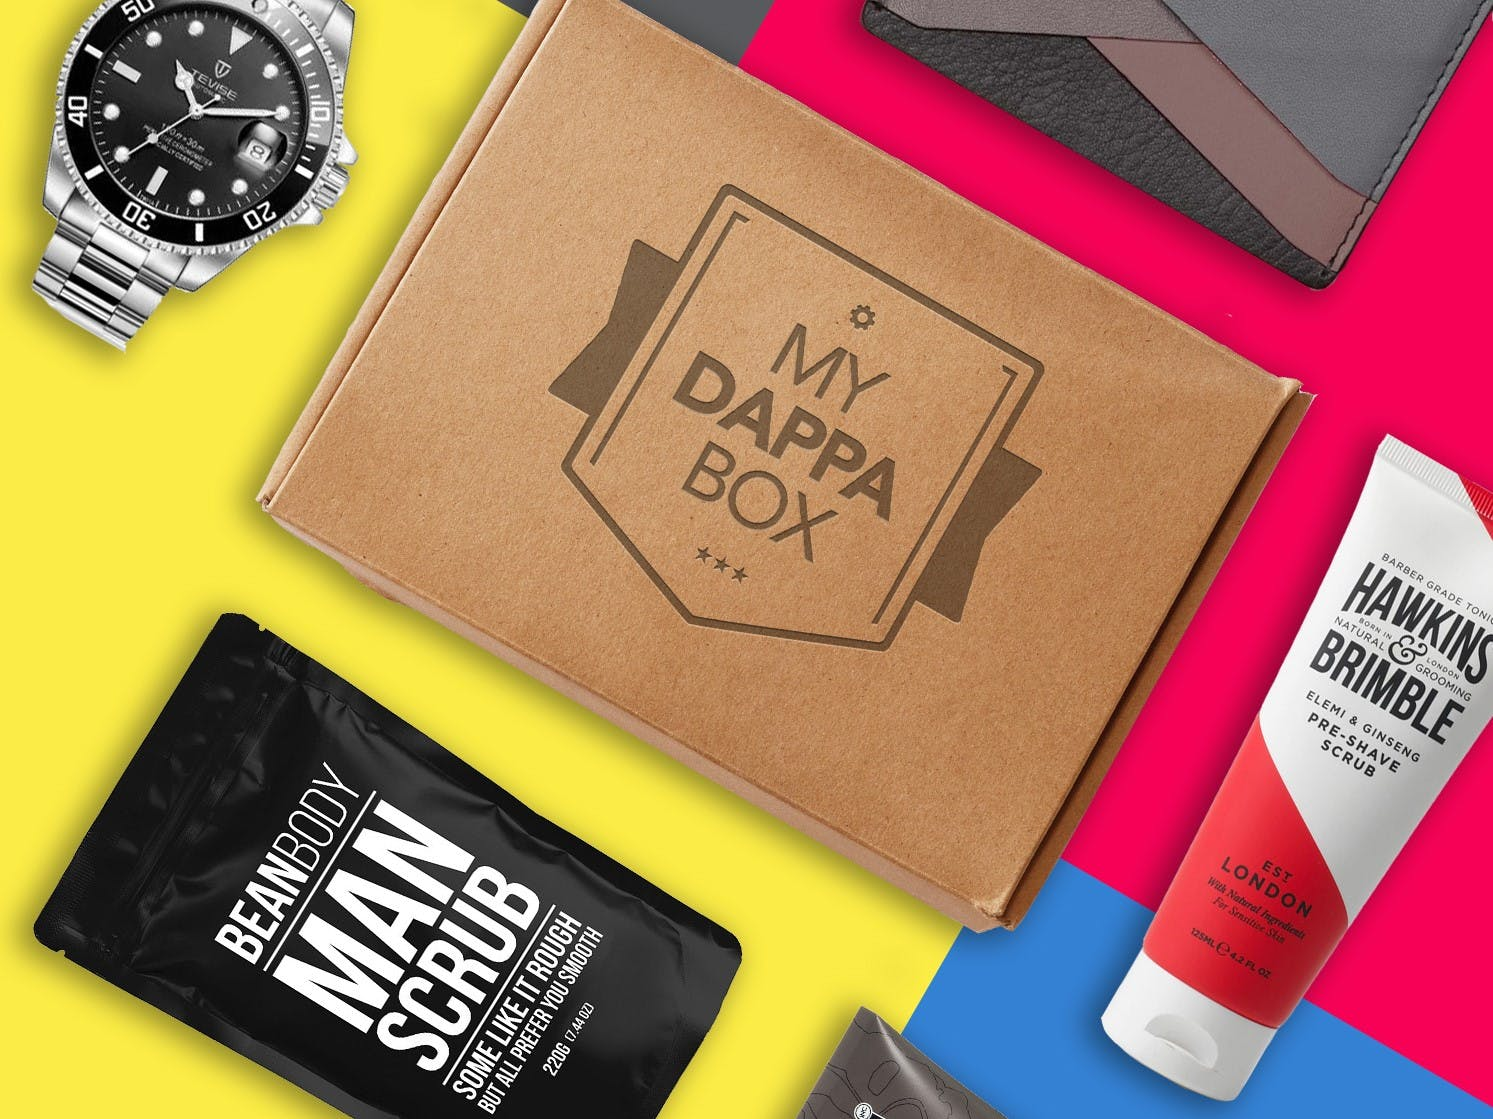 My Dappa Box Subscription Box